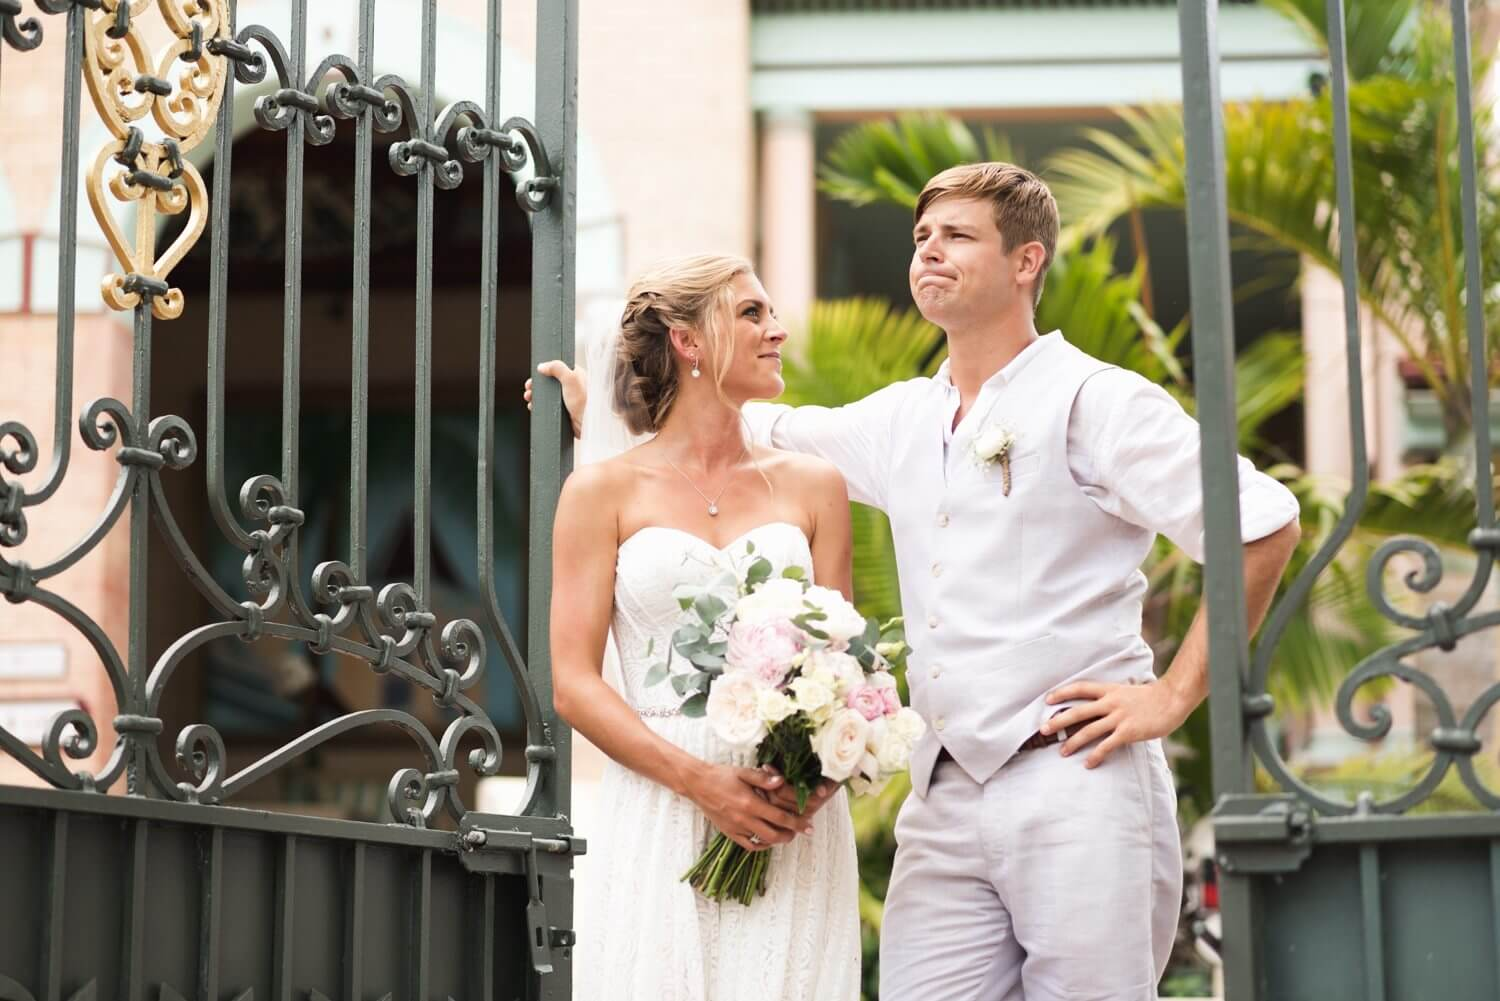 Freas Photography Southernmost House Wedding 63 - Boho Styled Key West Wedding at the Southernmost House in Key West, Florida